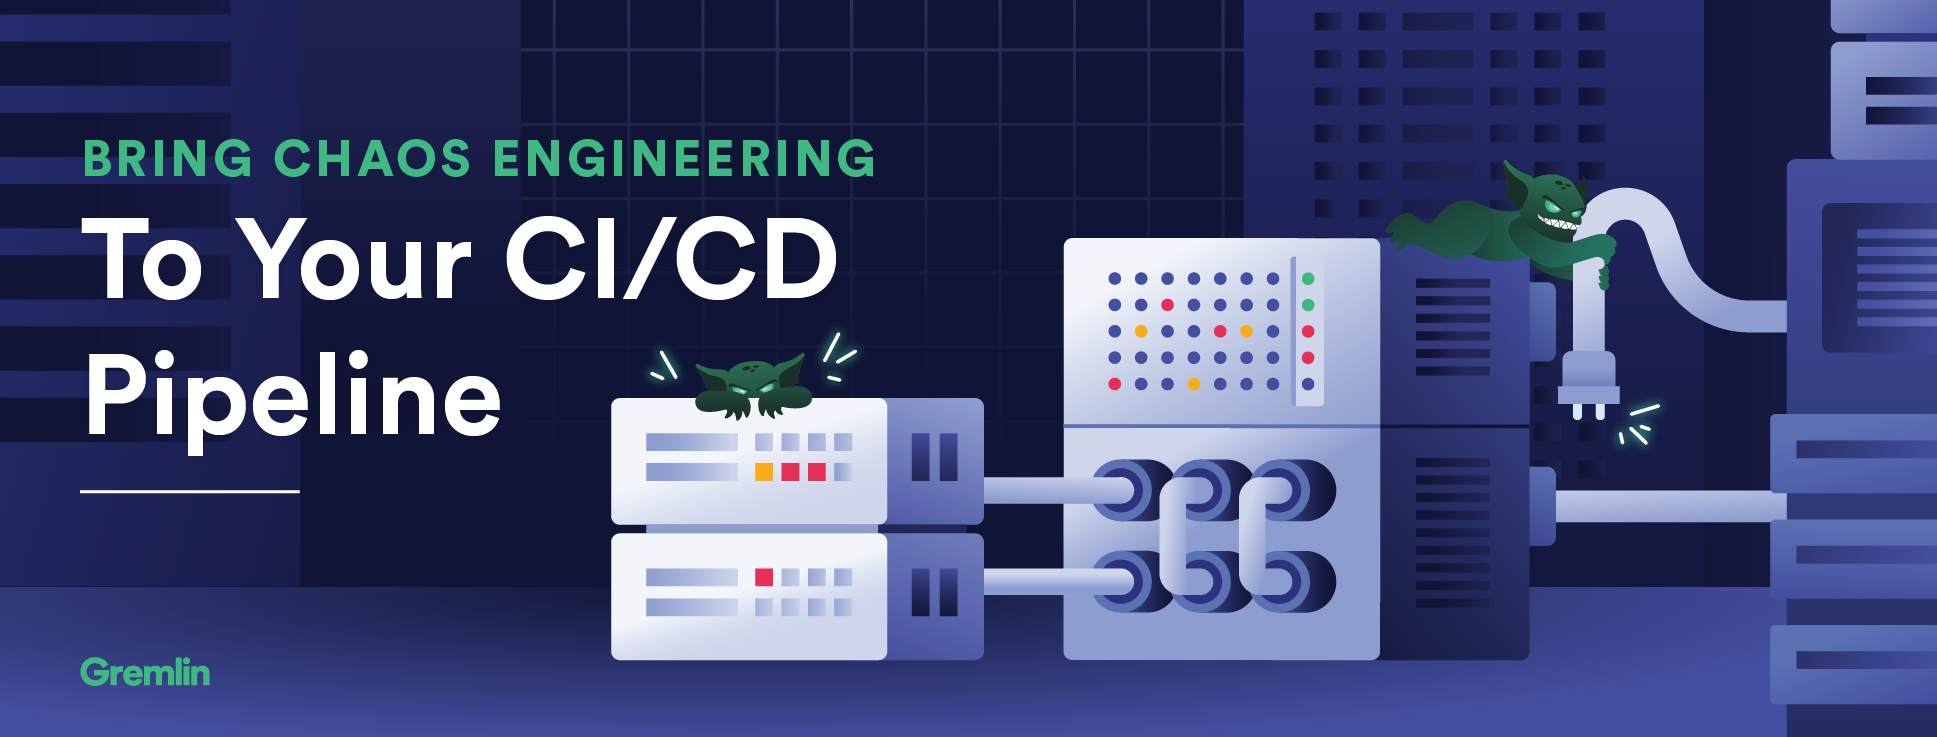 Bring Chaos Engineering to Your CI/CD Pipeline